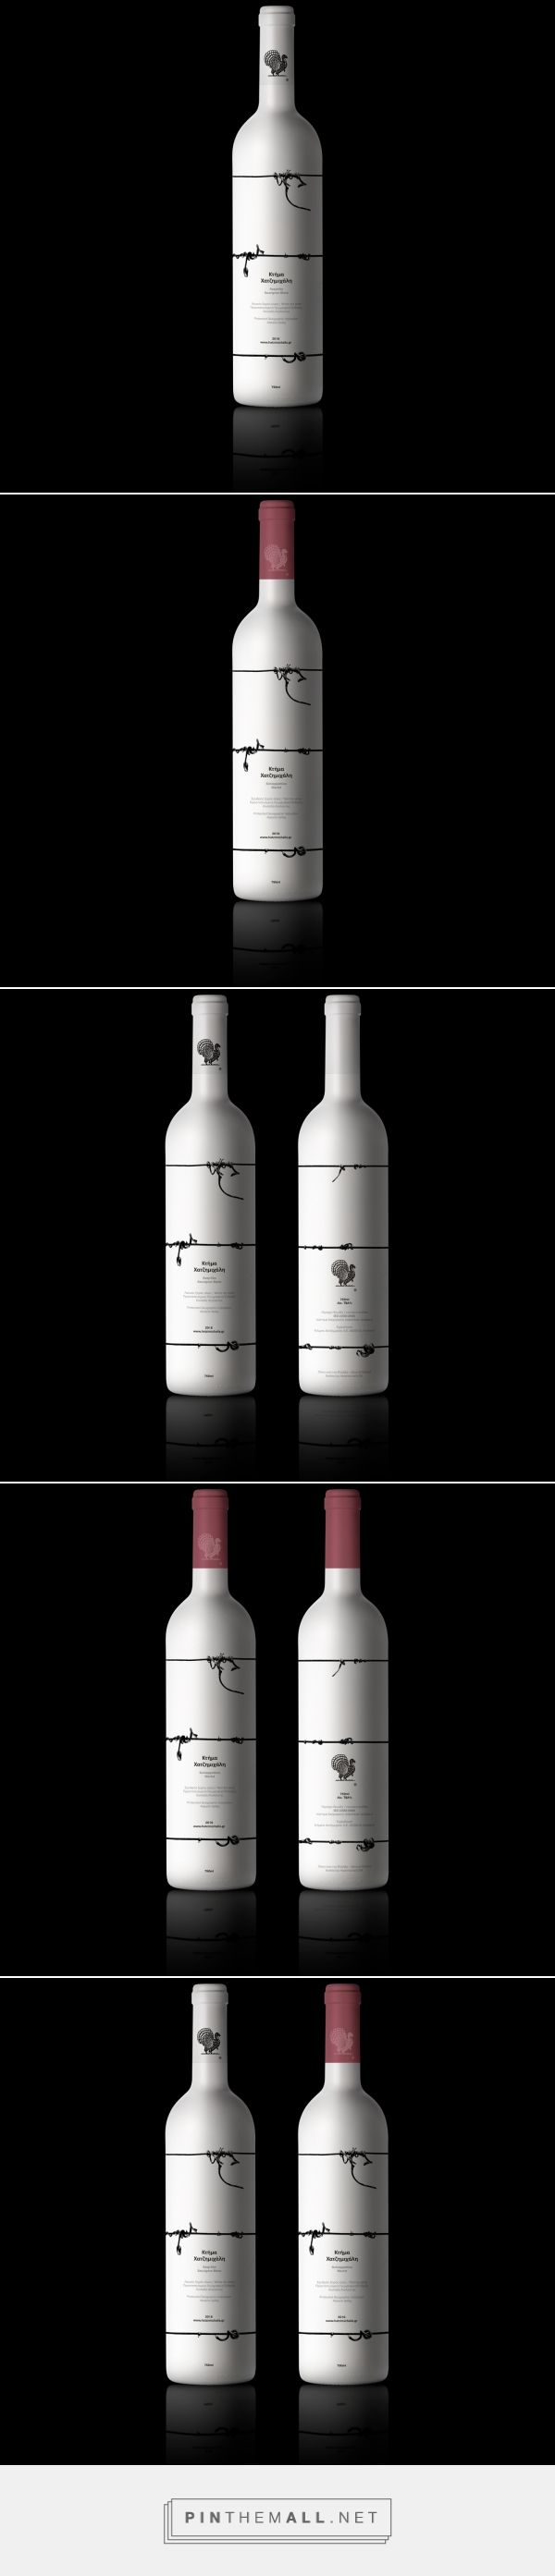 Hatzimichalis Wine - Packaging of the World - Creative Package Design Gallery - http://www.packagingoftheworld.com/2017/08/hatzimichalis-wine.html